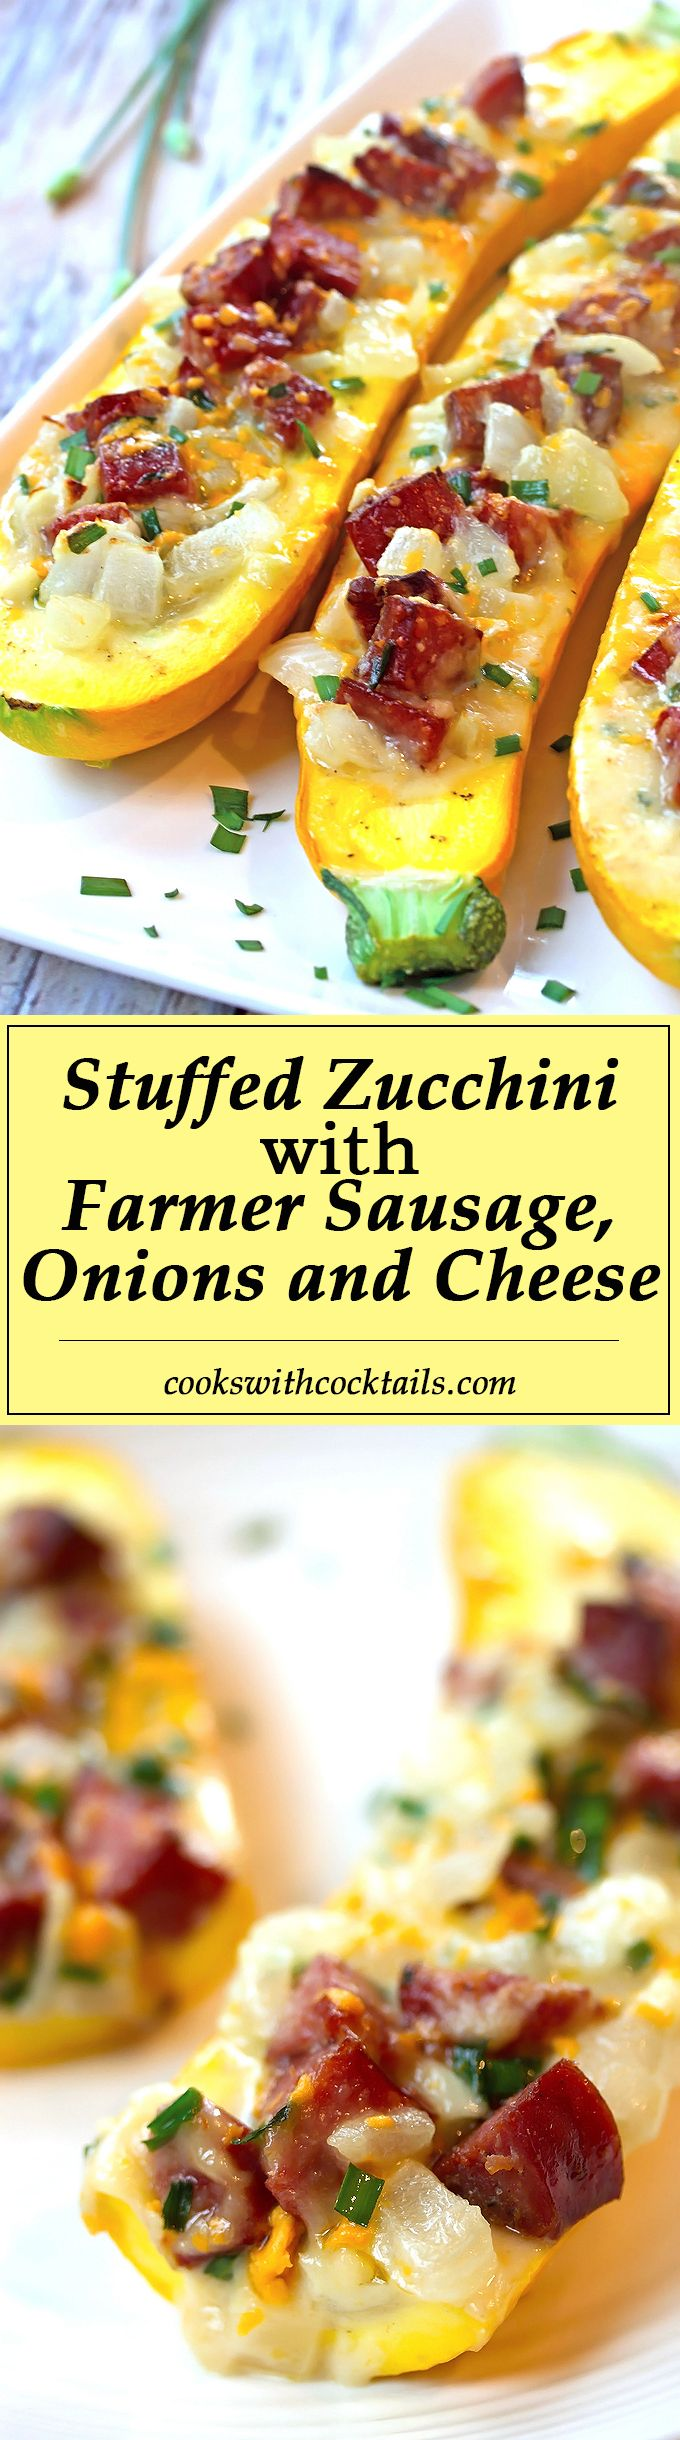 Stuffed Zucchini with Farmer Sausage, Onions & Cheese ~ If I added scrambled eggs, this would be an awesome breakfast.